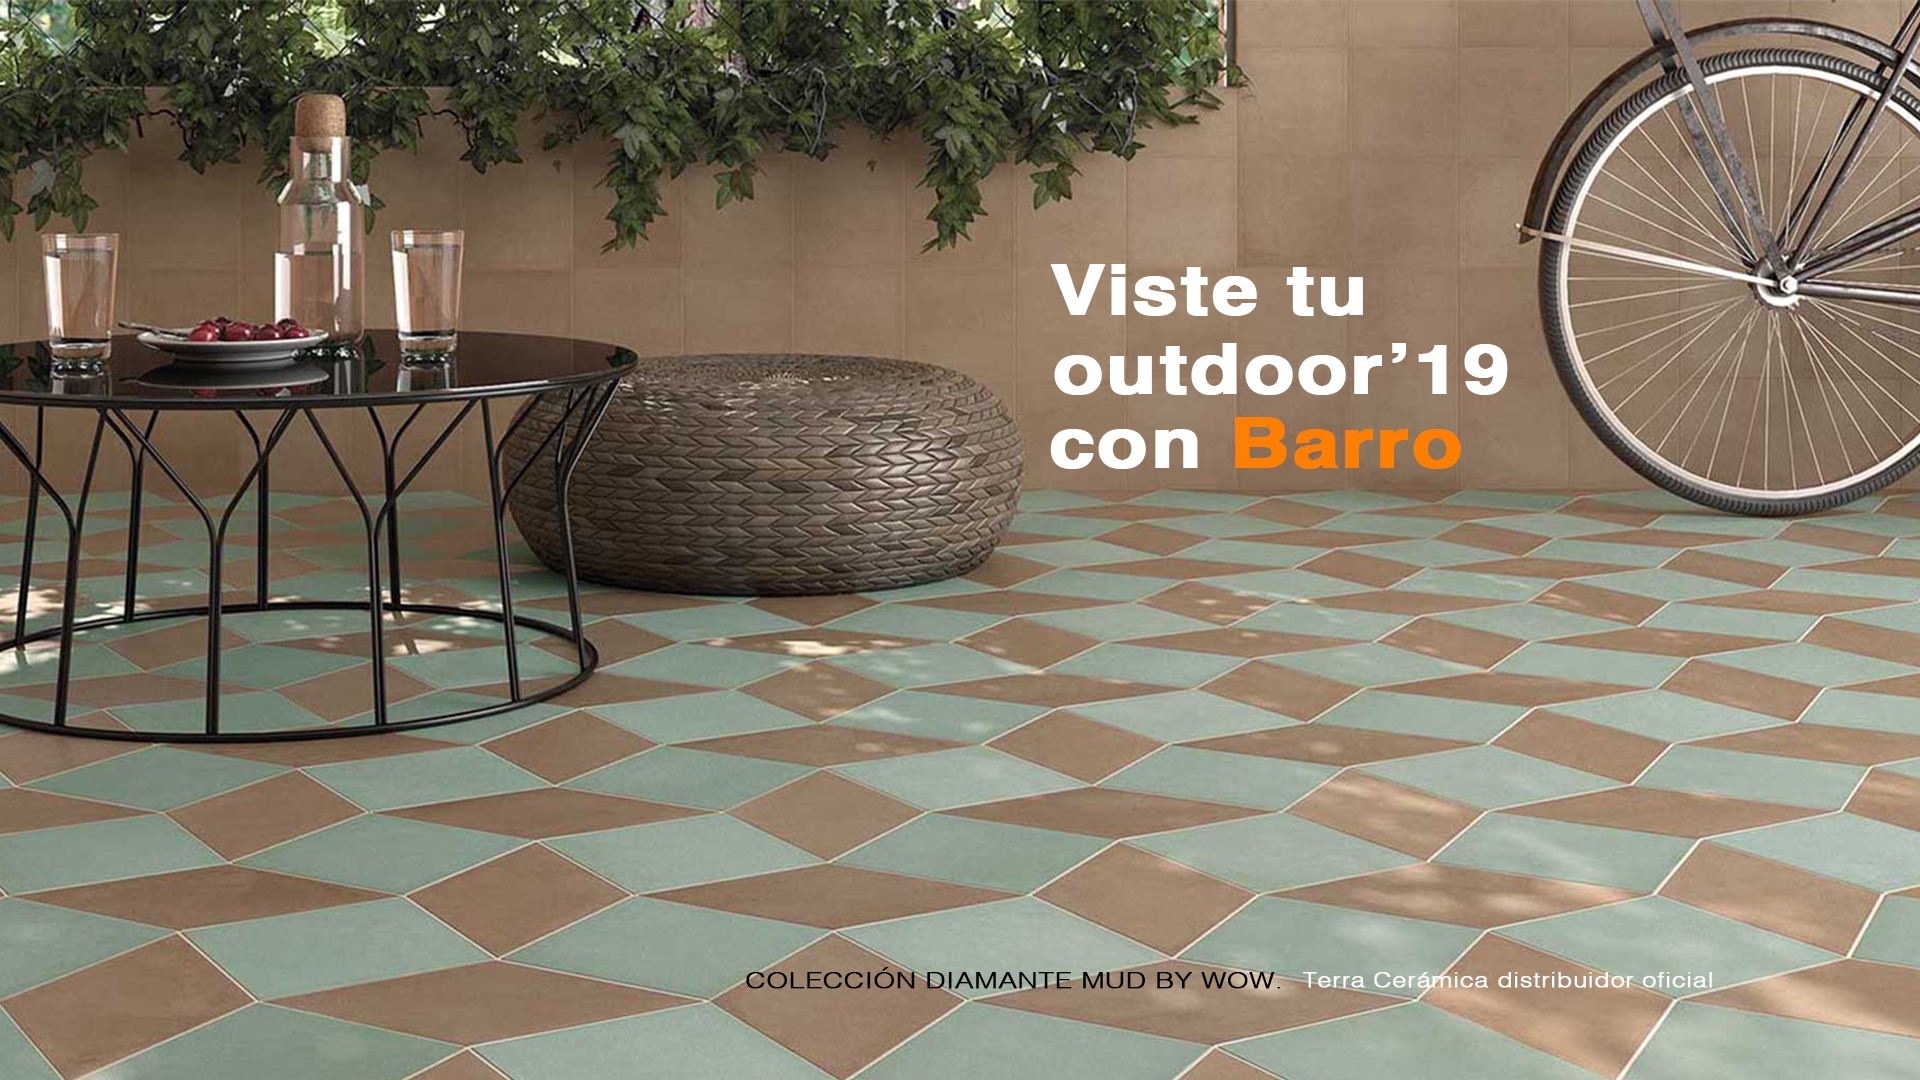 Viste tu Outdoor con Barro.